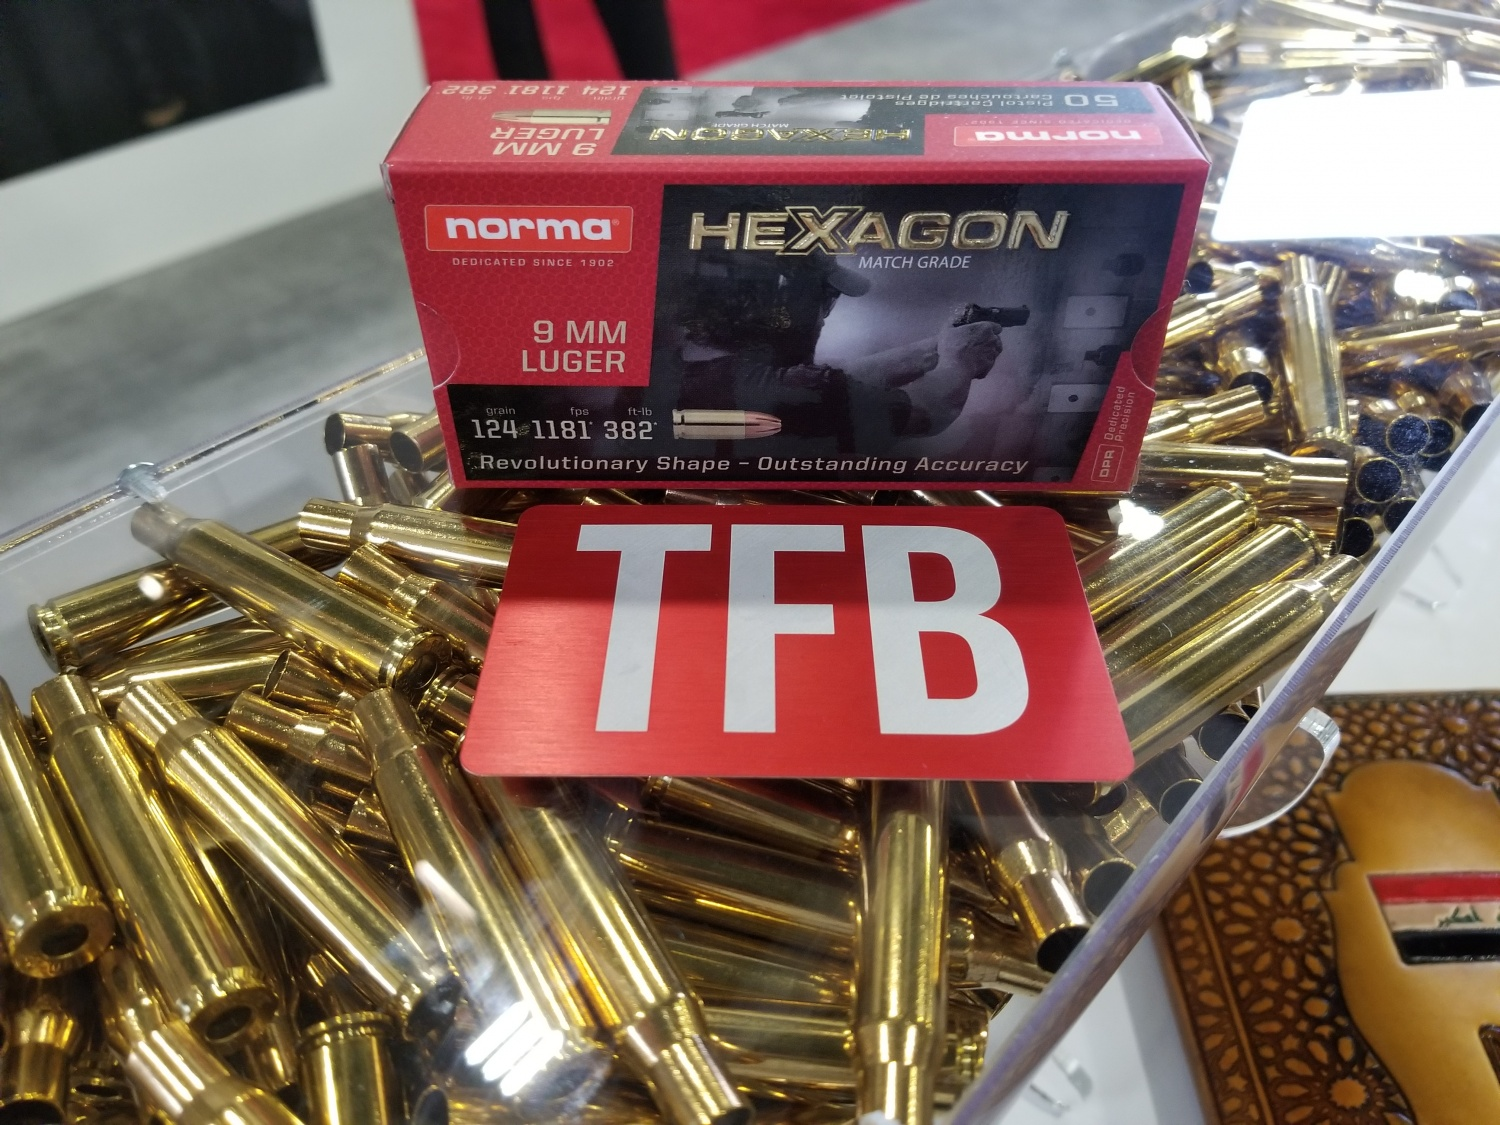 Hexagon 9 mm ammo from Norma